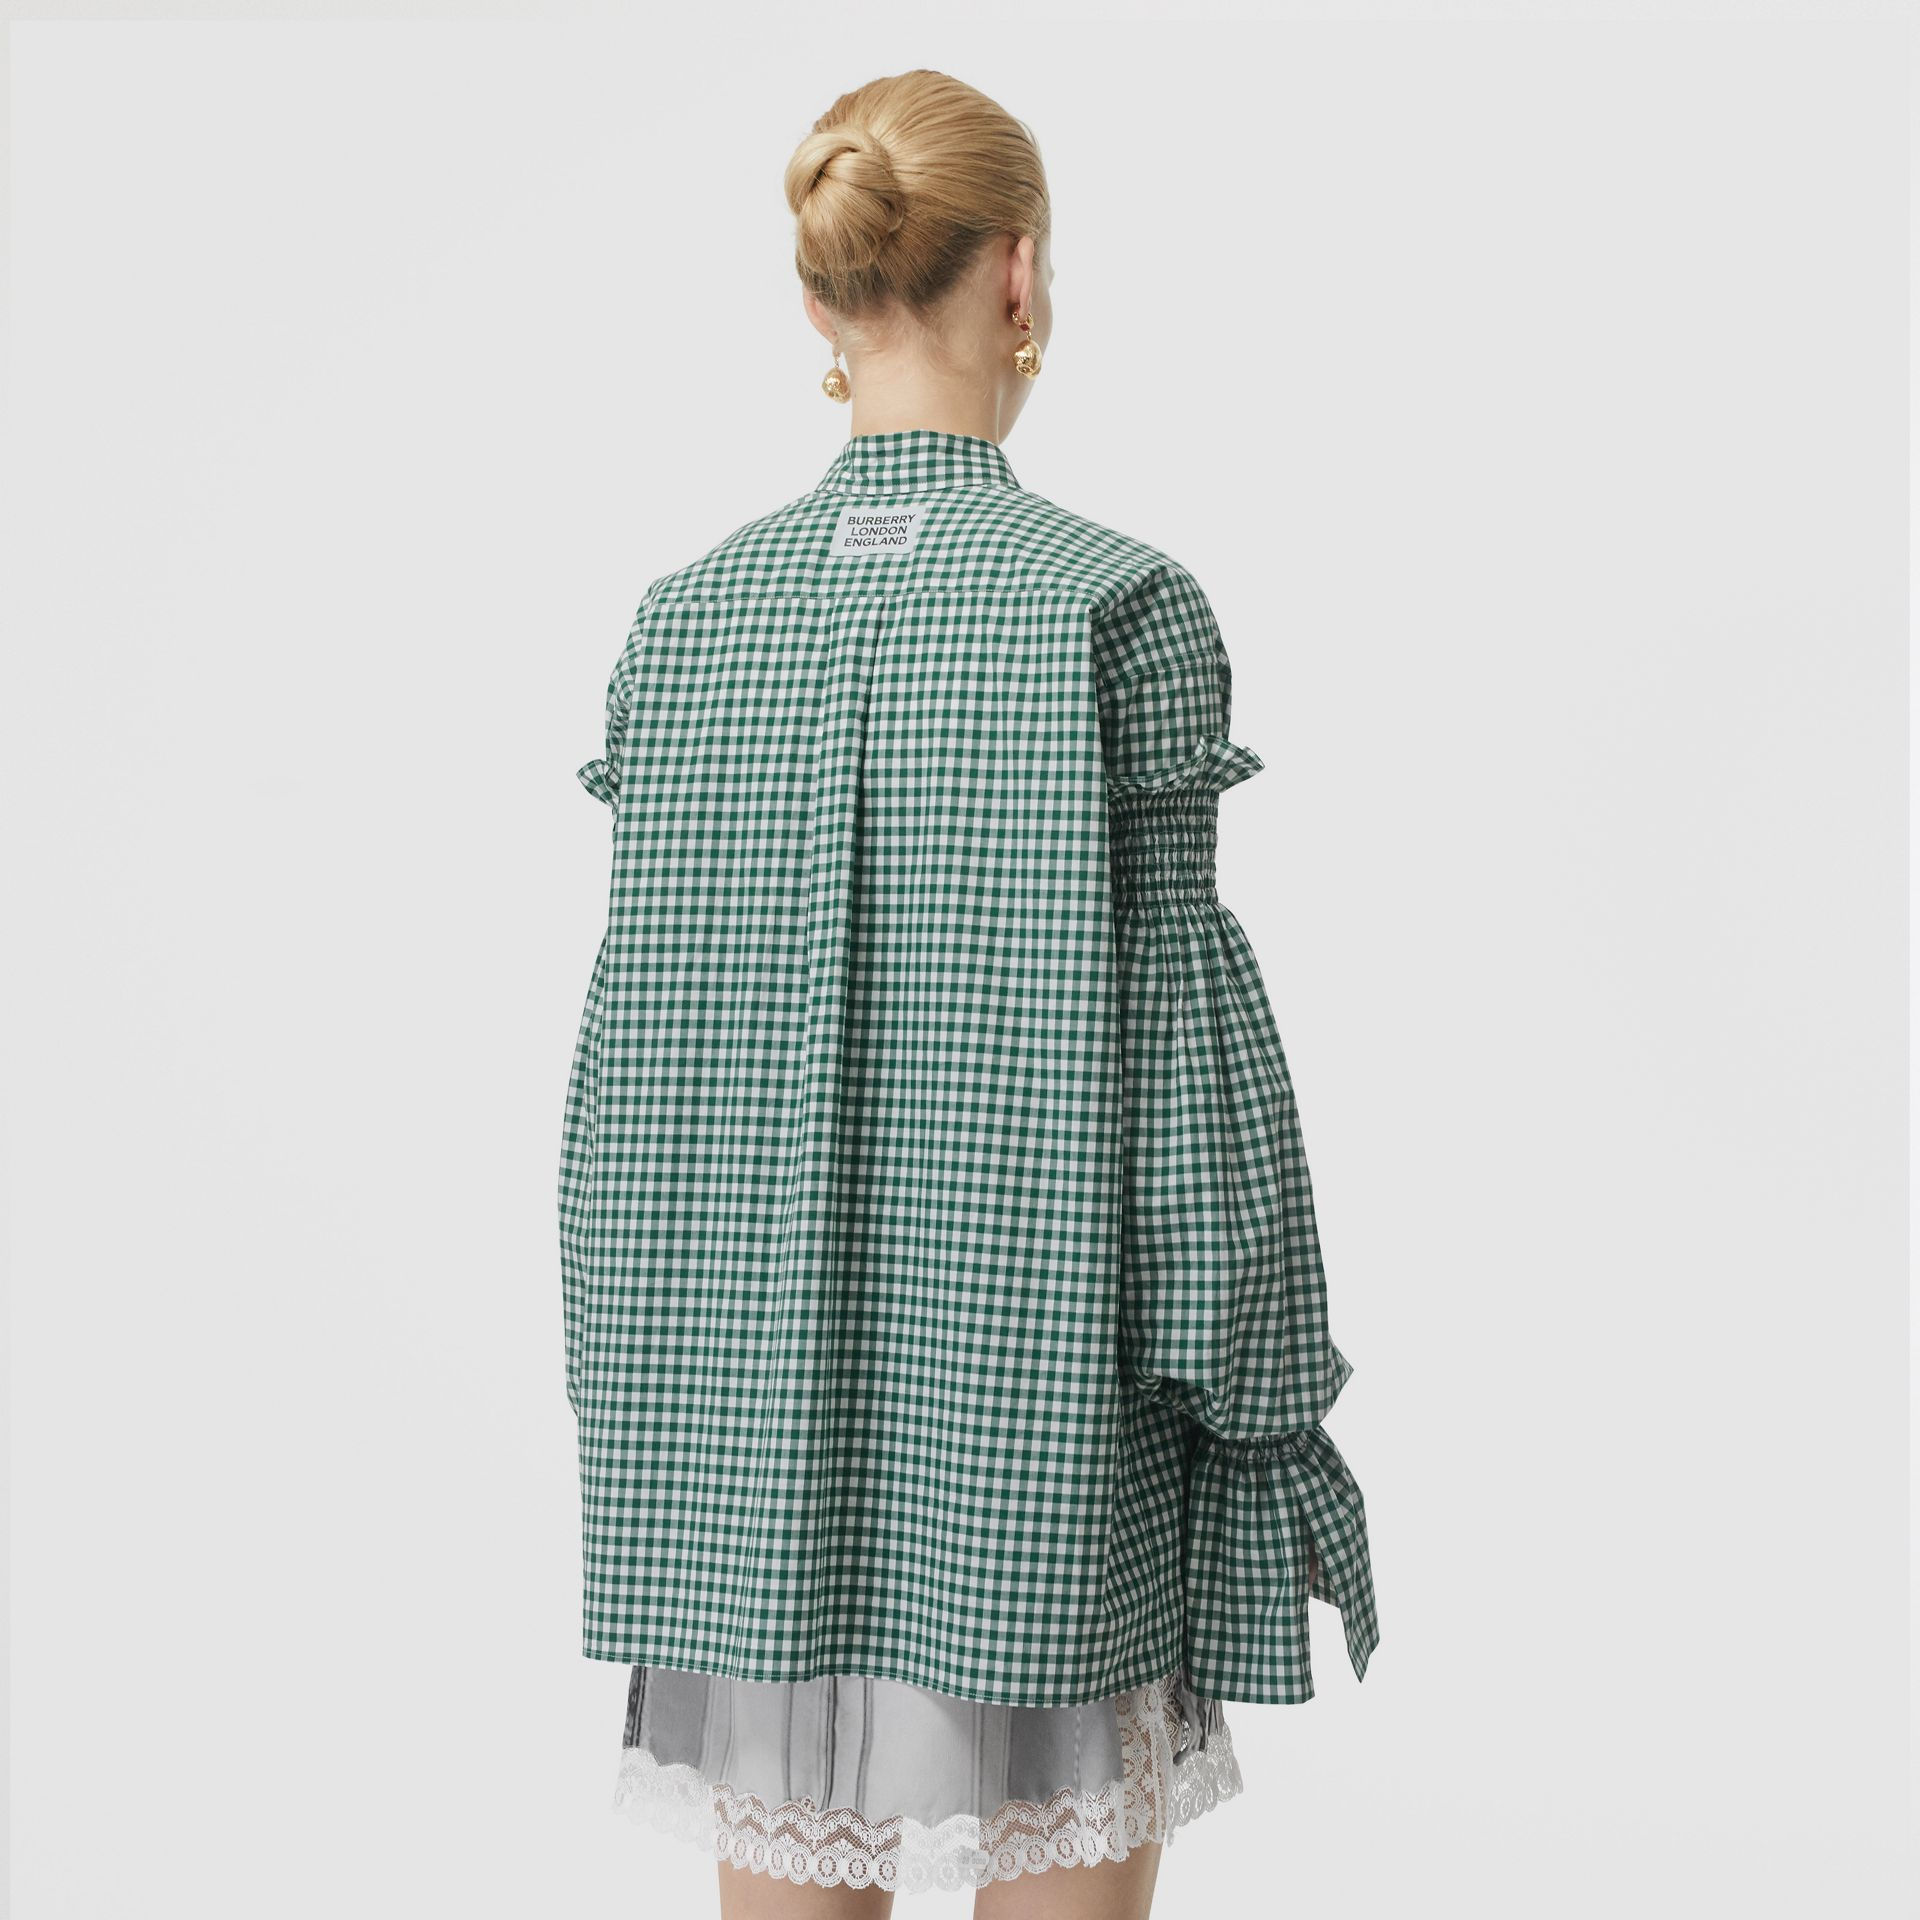 Puff-sleeve Gingham Cotton Shirt in White/green - Women | Burberry Singapore - gallery image 2